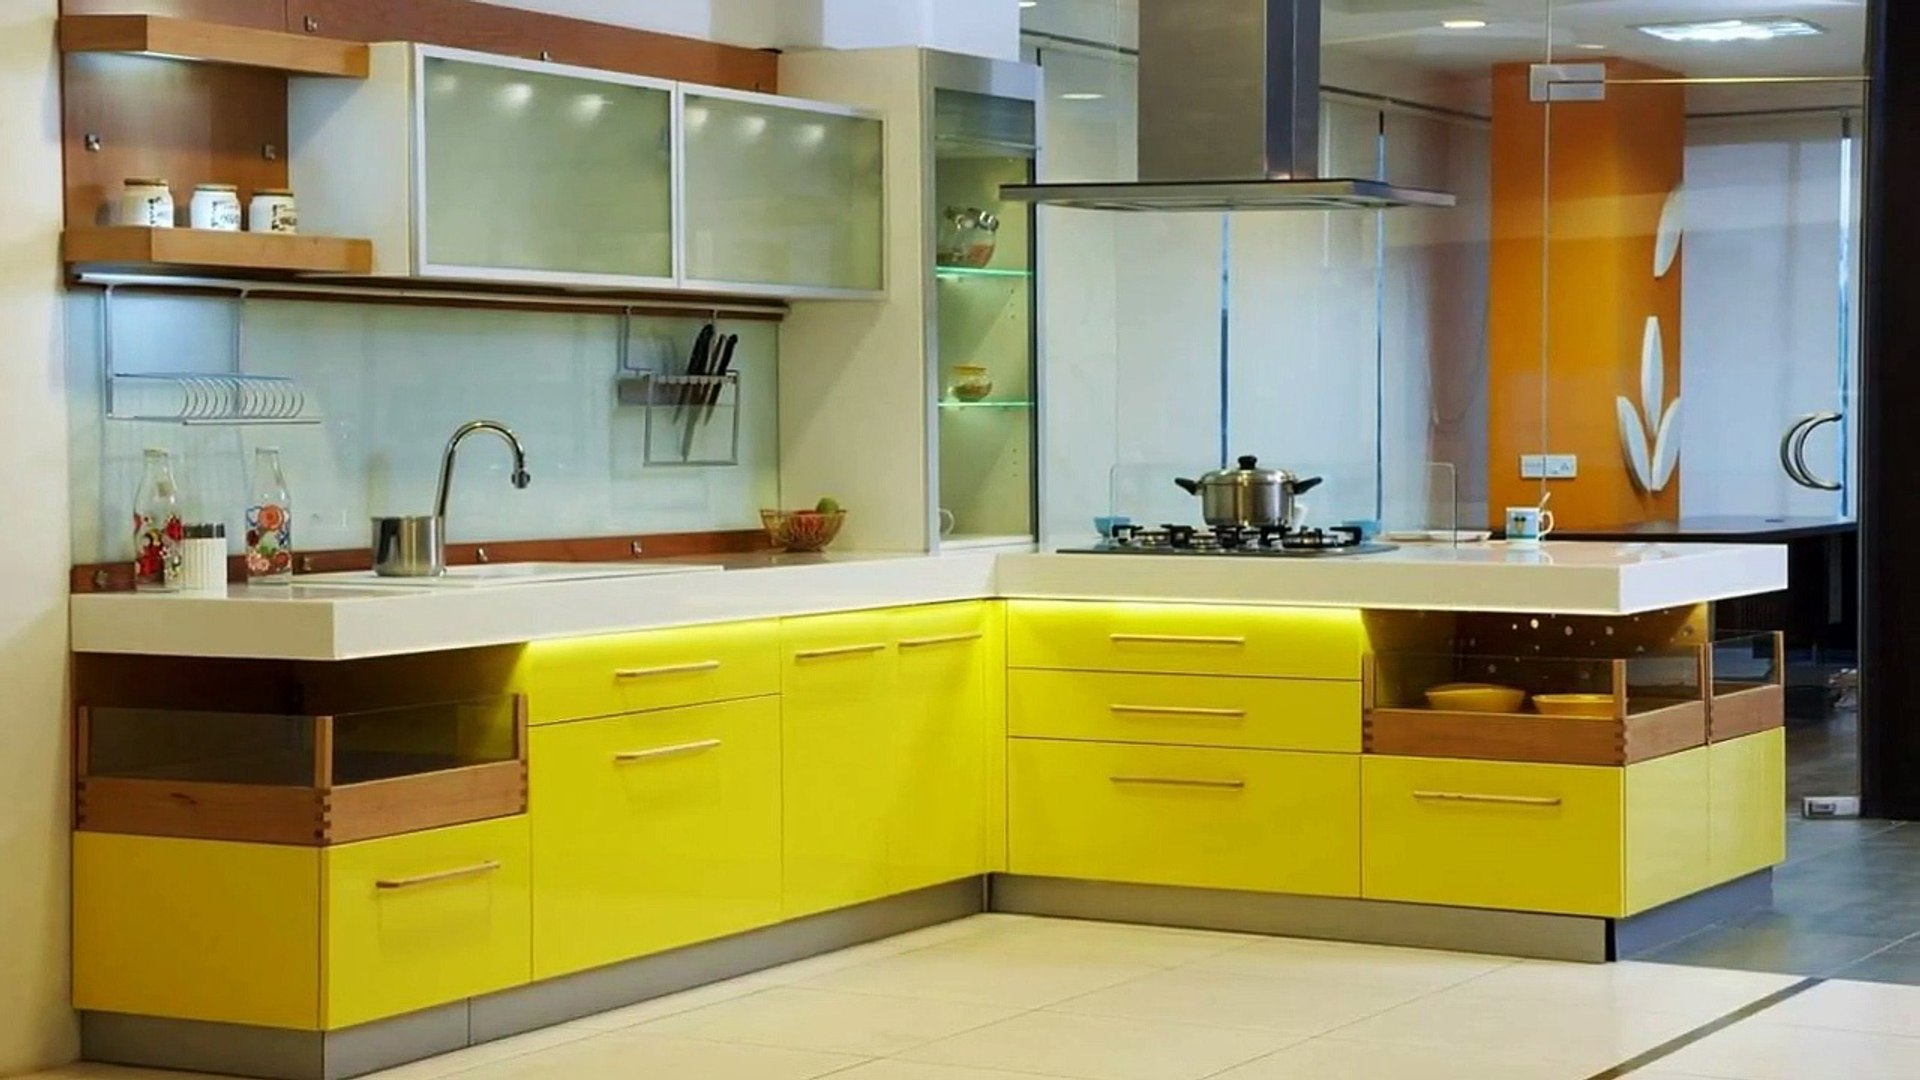 Indian Kitchen Design For Small Space Video Dailymotion